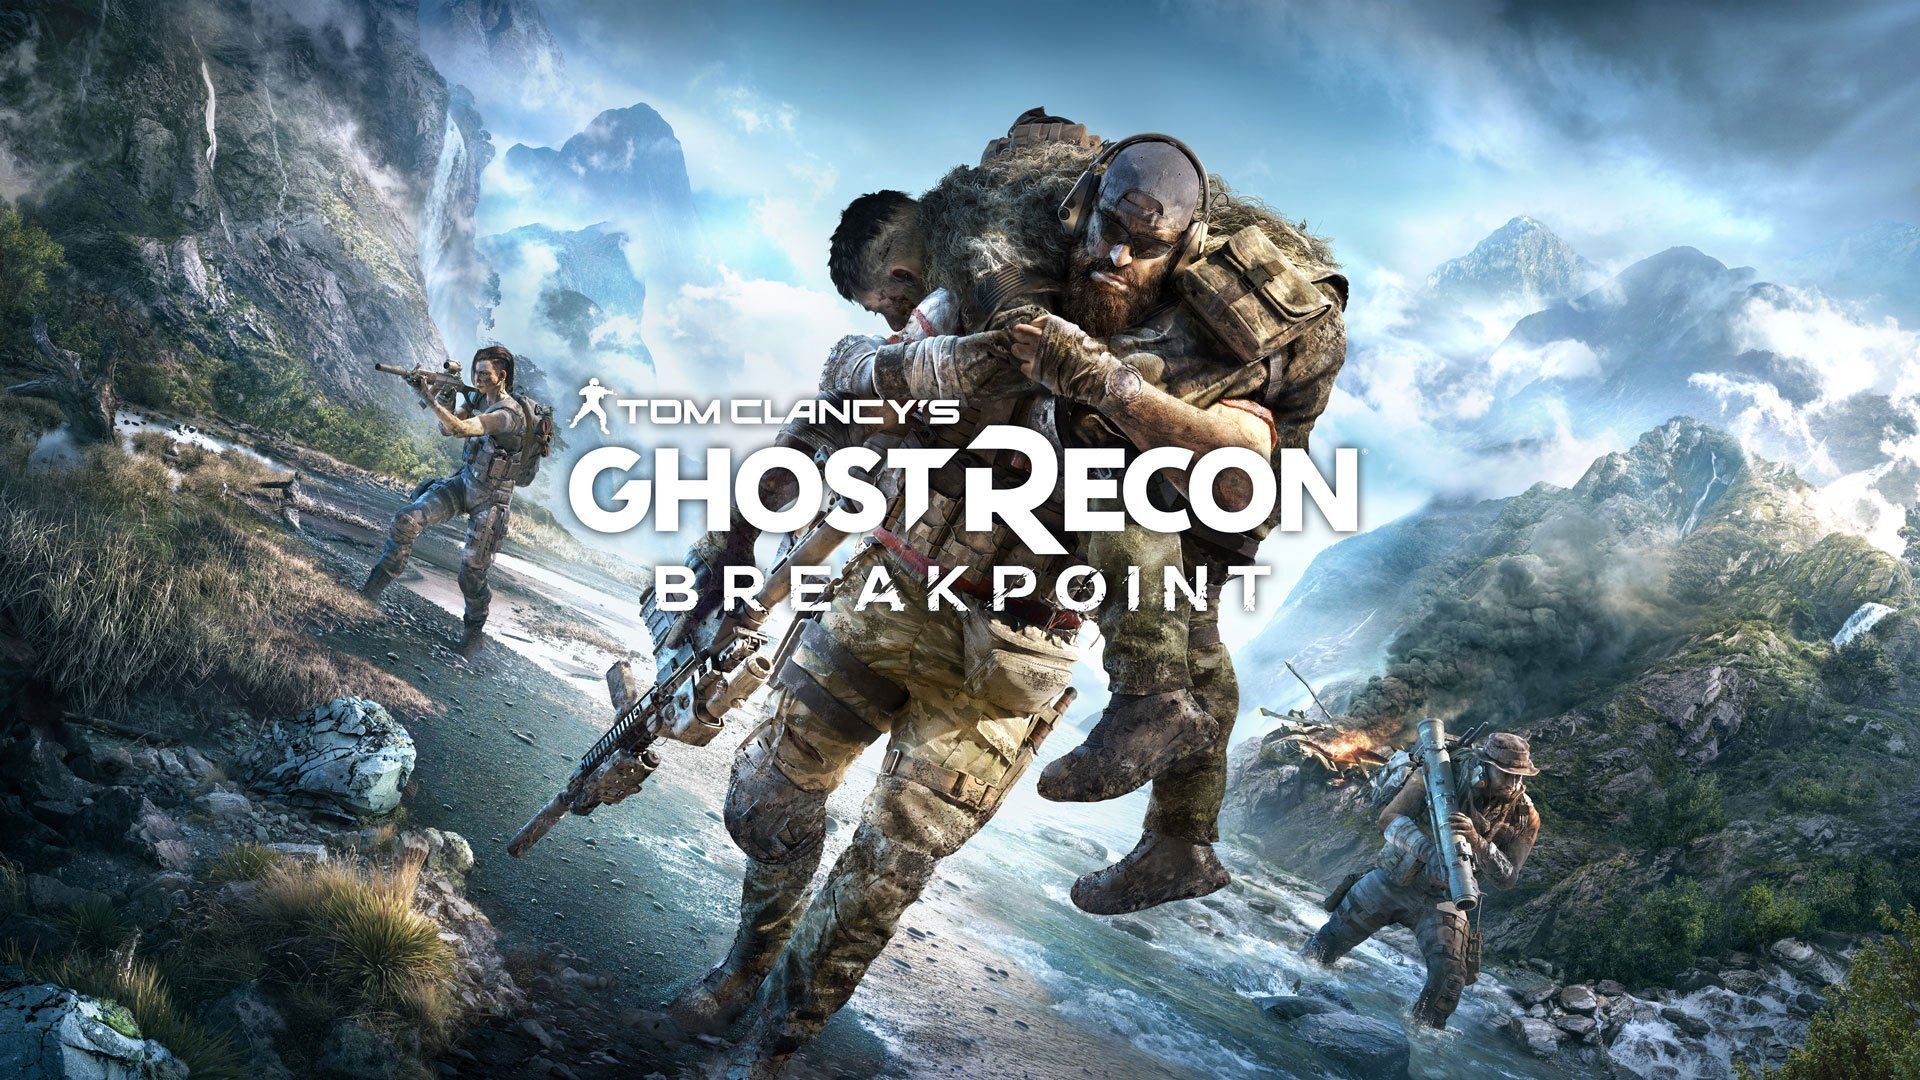 Tom Clancy's Ghost Recon: Breakpoint will be available on Google Stadia alongside traditional platforms like Xbox One and PlayStation 4.